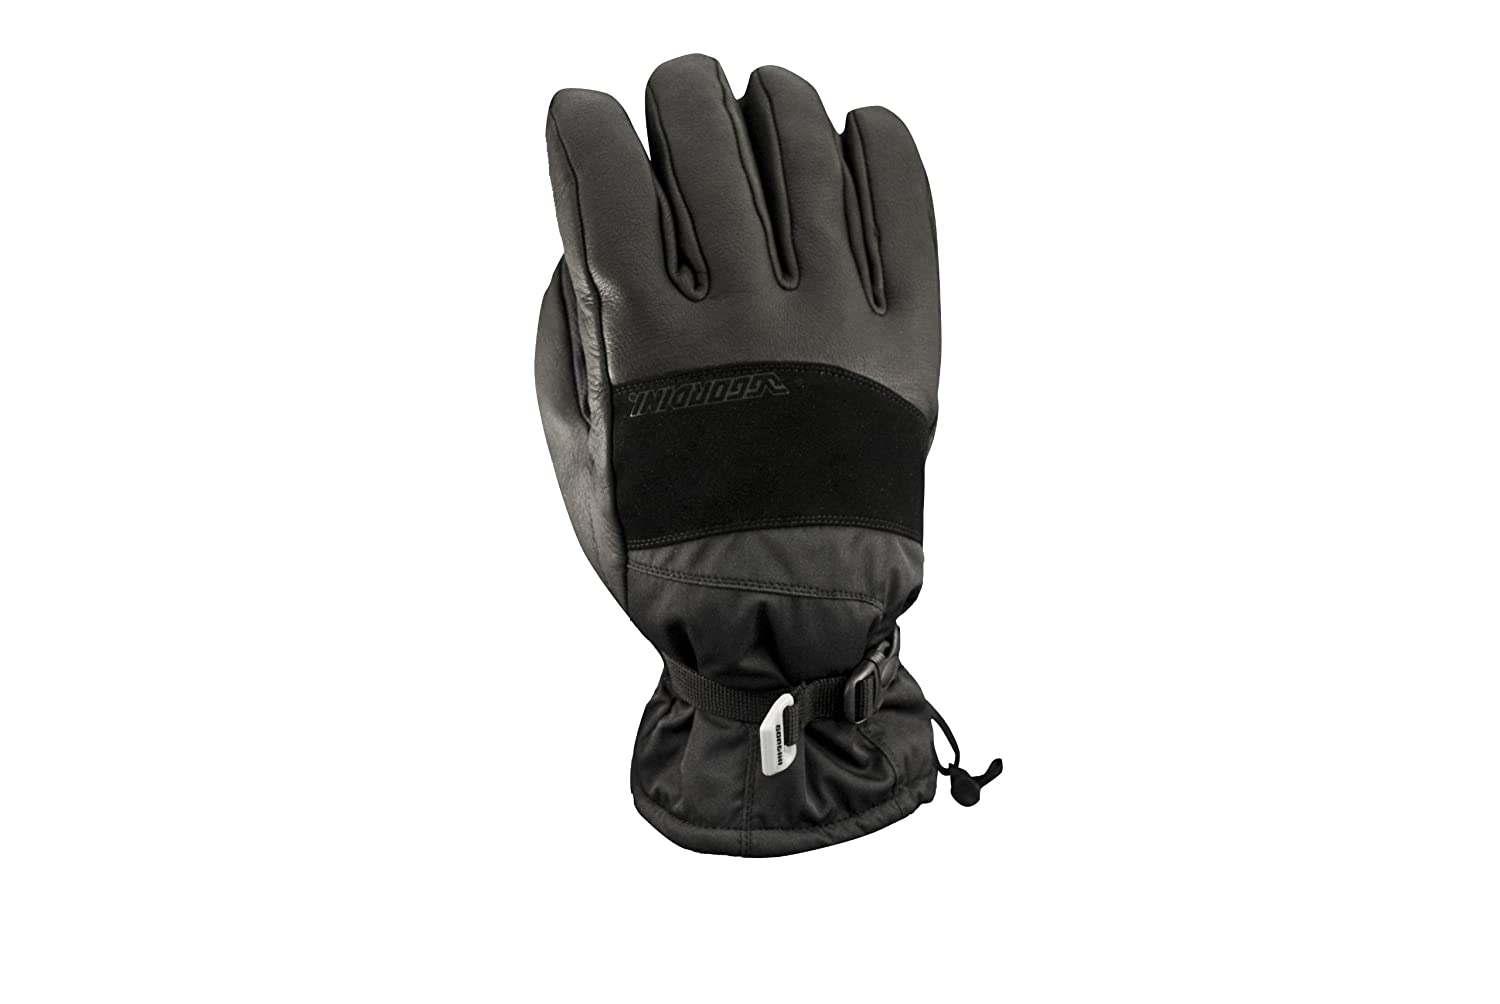 Gordini Men's The Polar Glove 4G2097